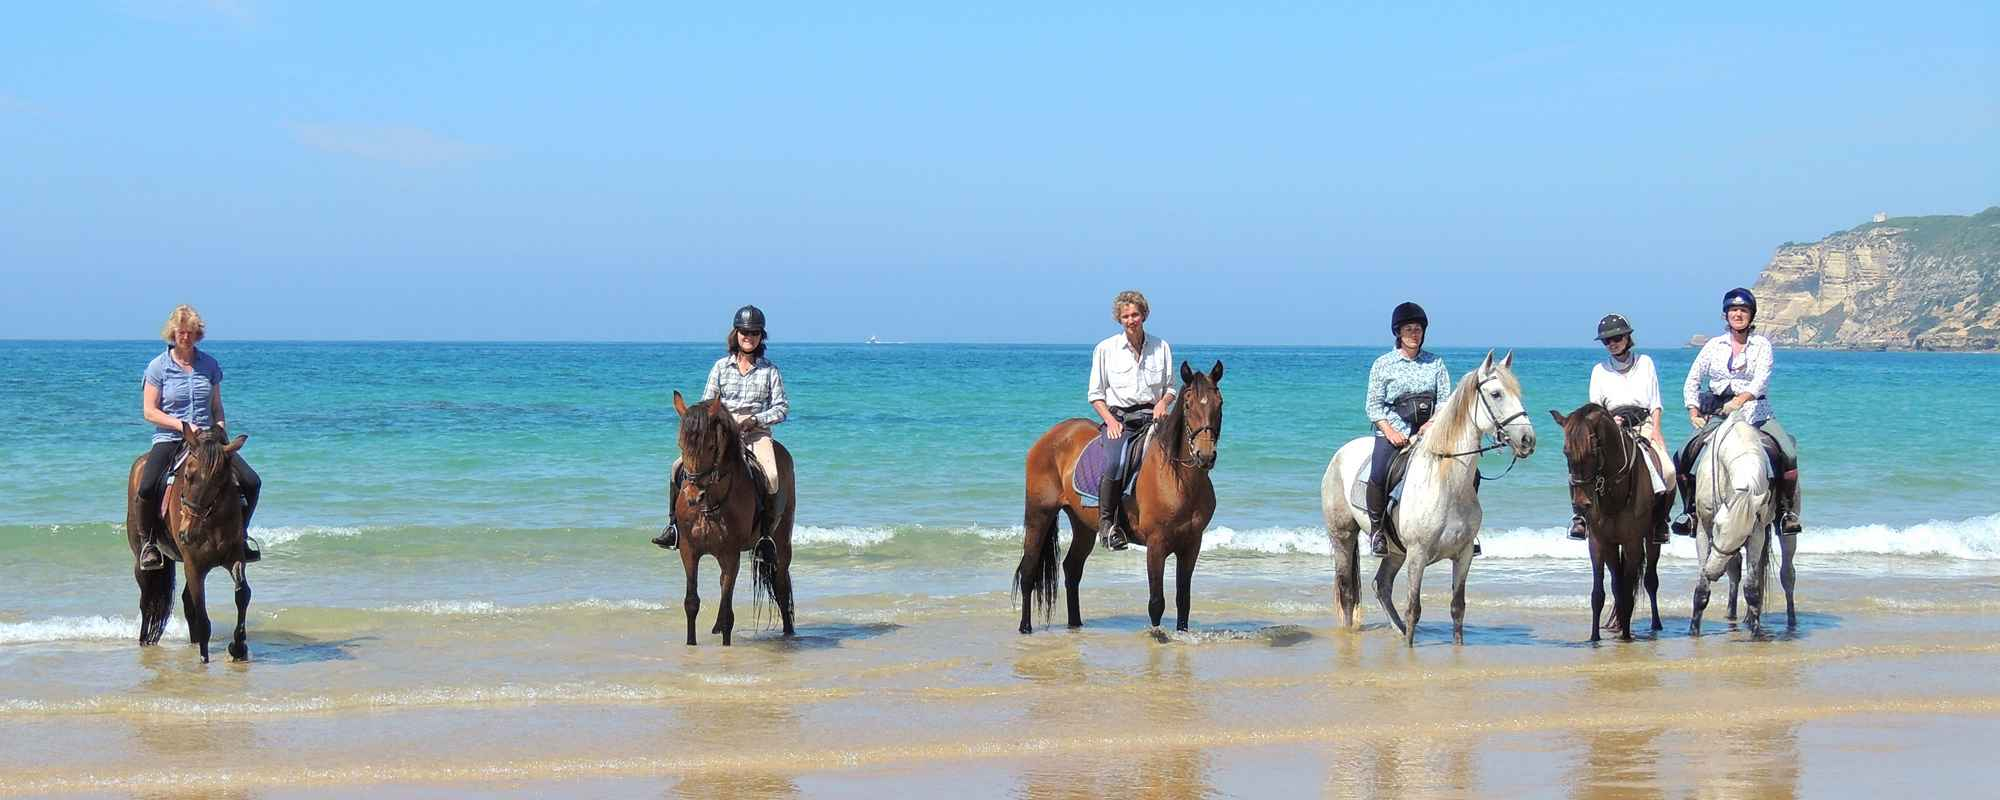 Fantastic beach horse riding